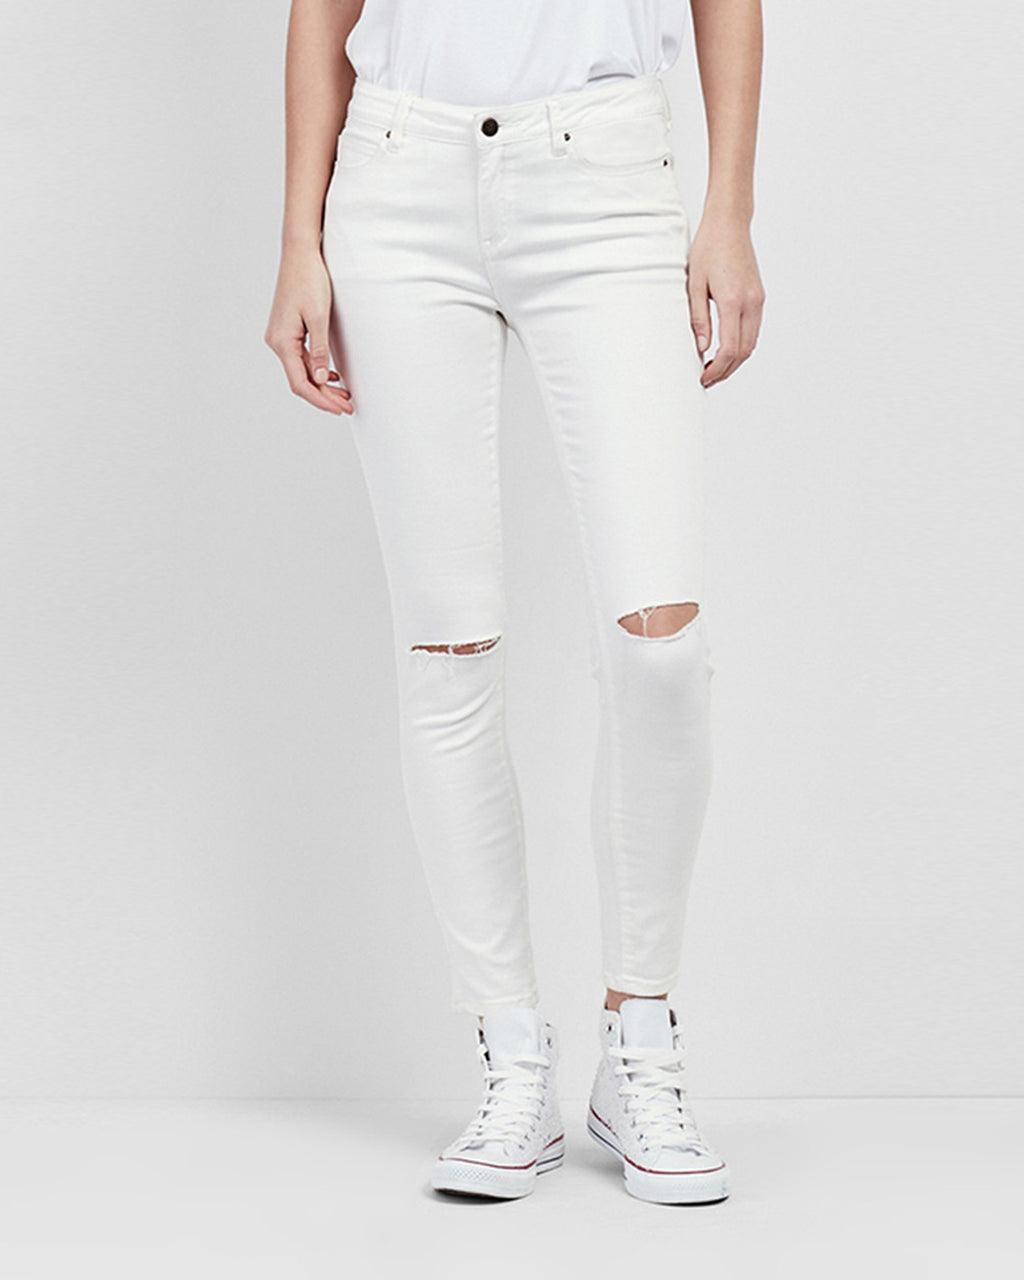 NJ0130 - WHITE SLASHED JEANS - bottoms - denim - These Mid Rise jeans are finished with slashed de tail at the knees.